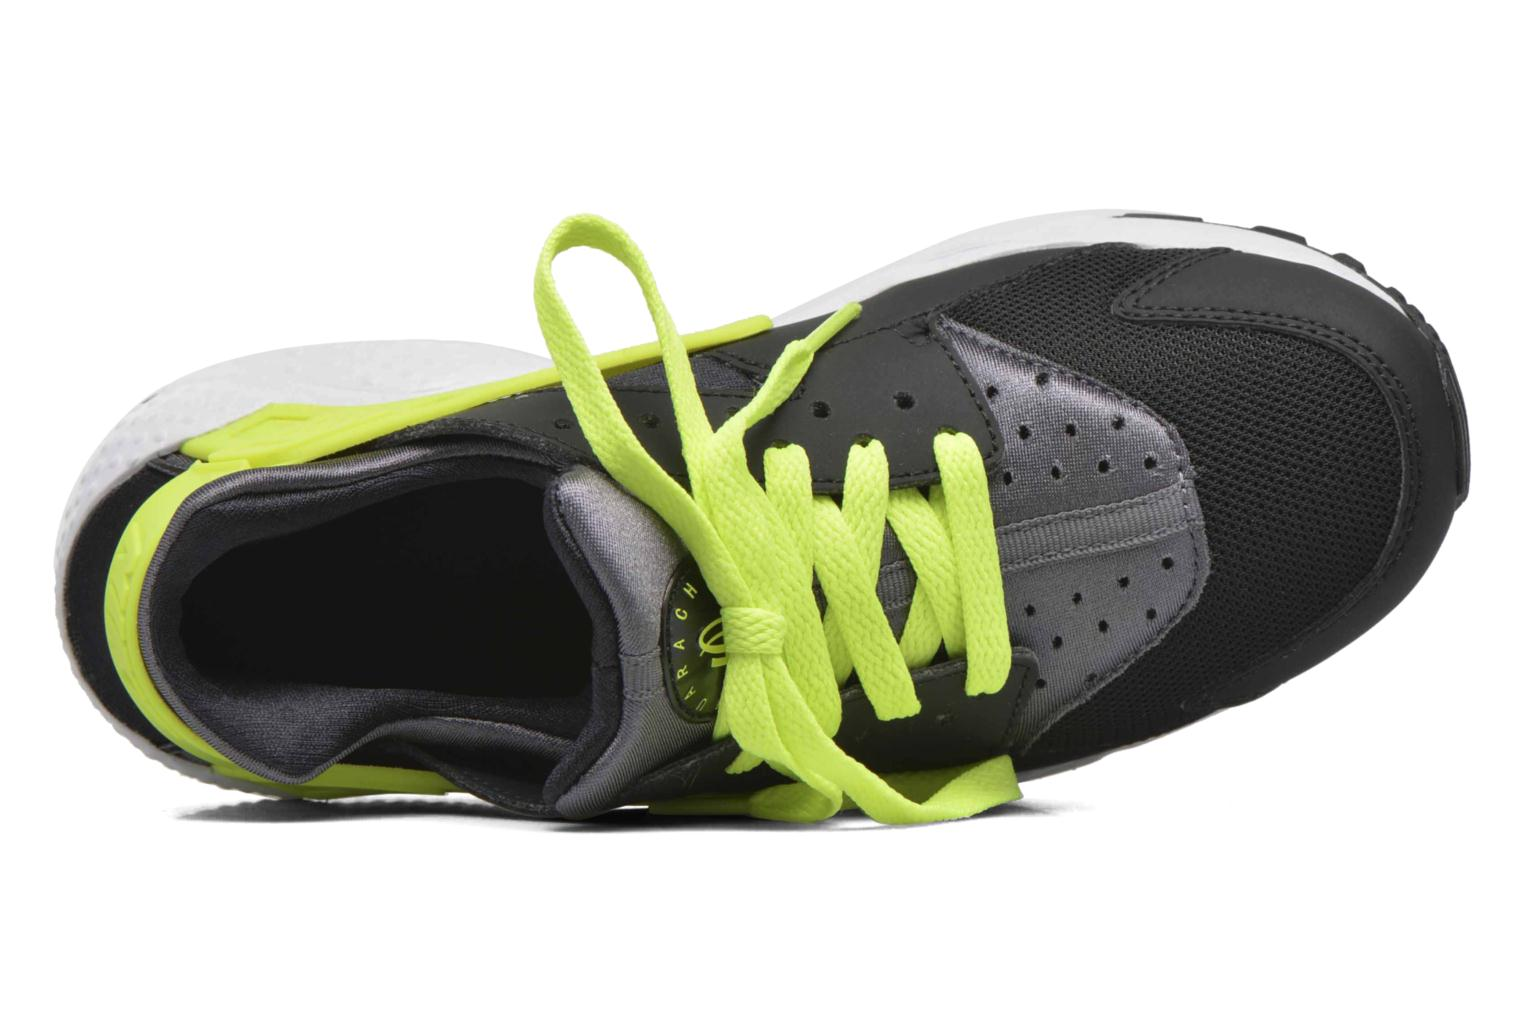 Nike Black Gs grey Run volt white dark Nike Huarache p1rqUp